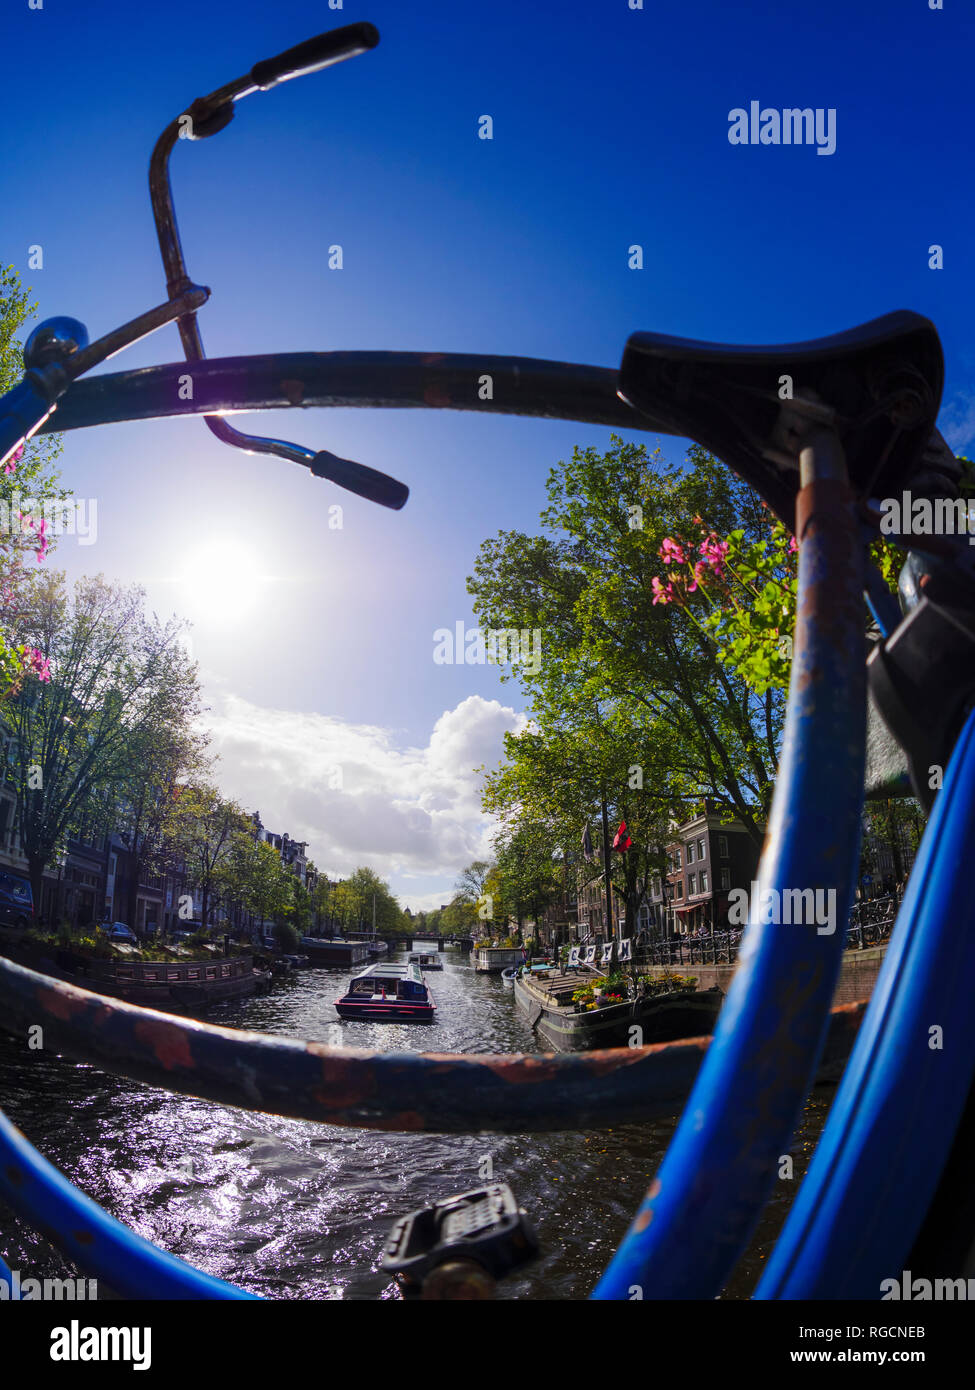 Netherlands, Amsterdam, bicycle at Prinsengracht - Stock Image